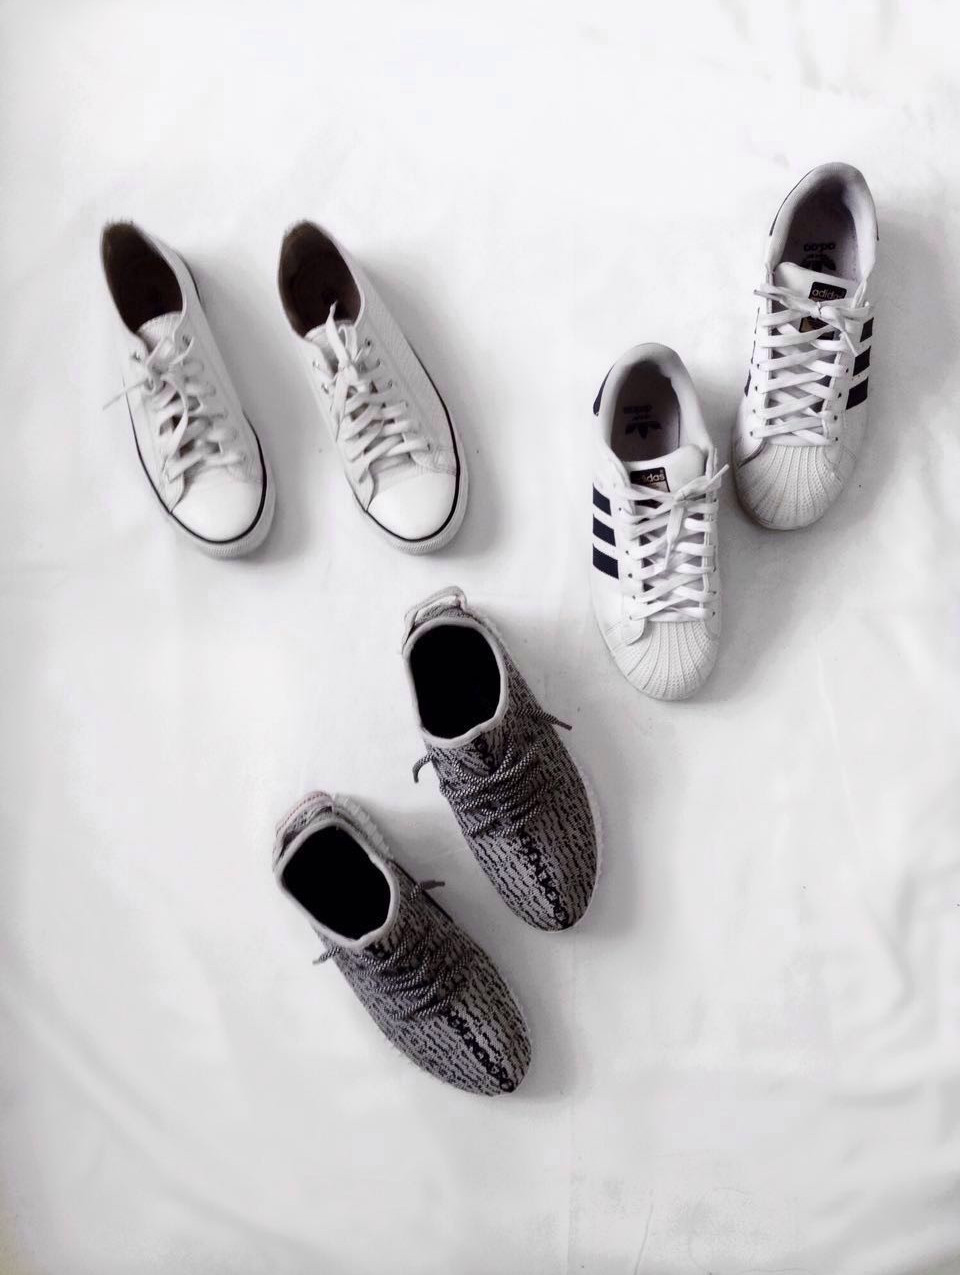 These are your trusty grab-and-go-out-the door shoes. I'm all about comfort, and when it comes to shoes, my everyday choice are sneakers.